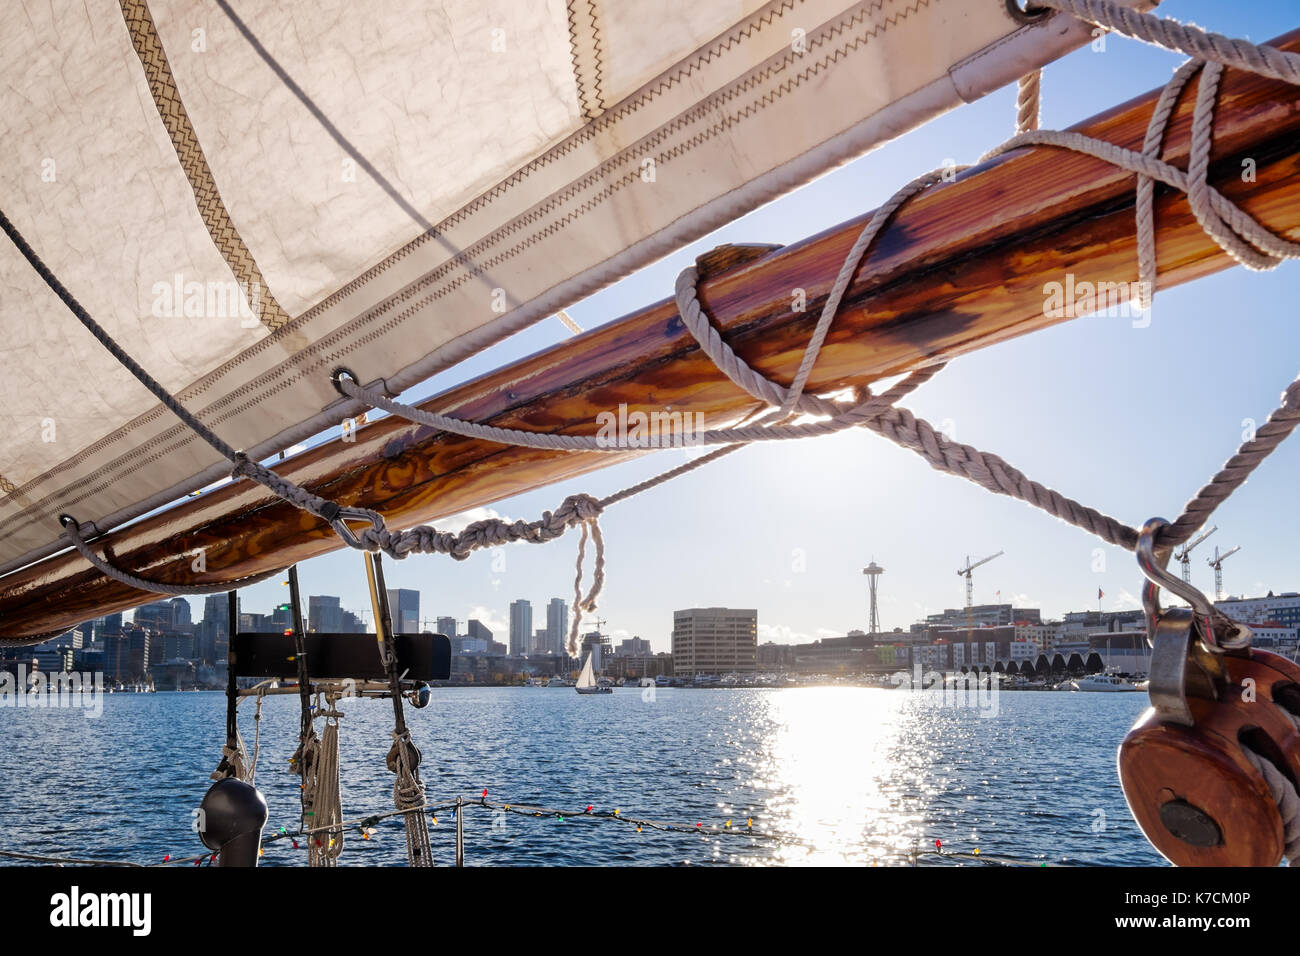 Seattle sailing on Lake Union in a vintage yacht, sailboat. Sail frames a view of the skyline and waterfront, including Space Needle. - Stock Image